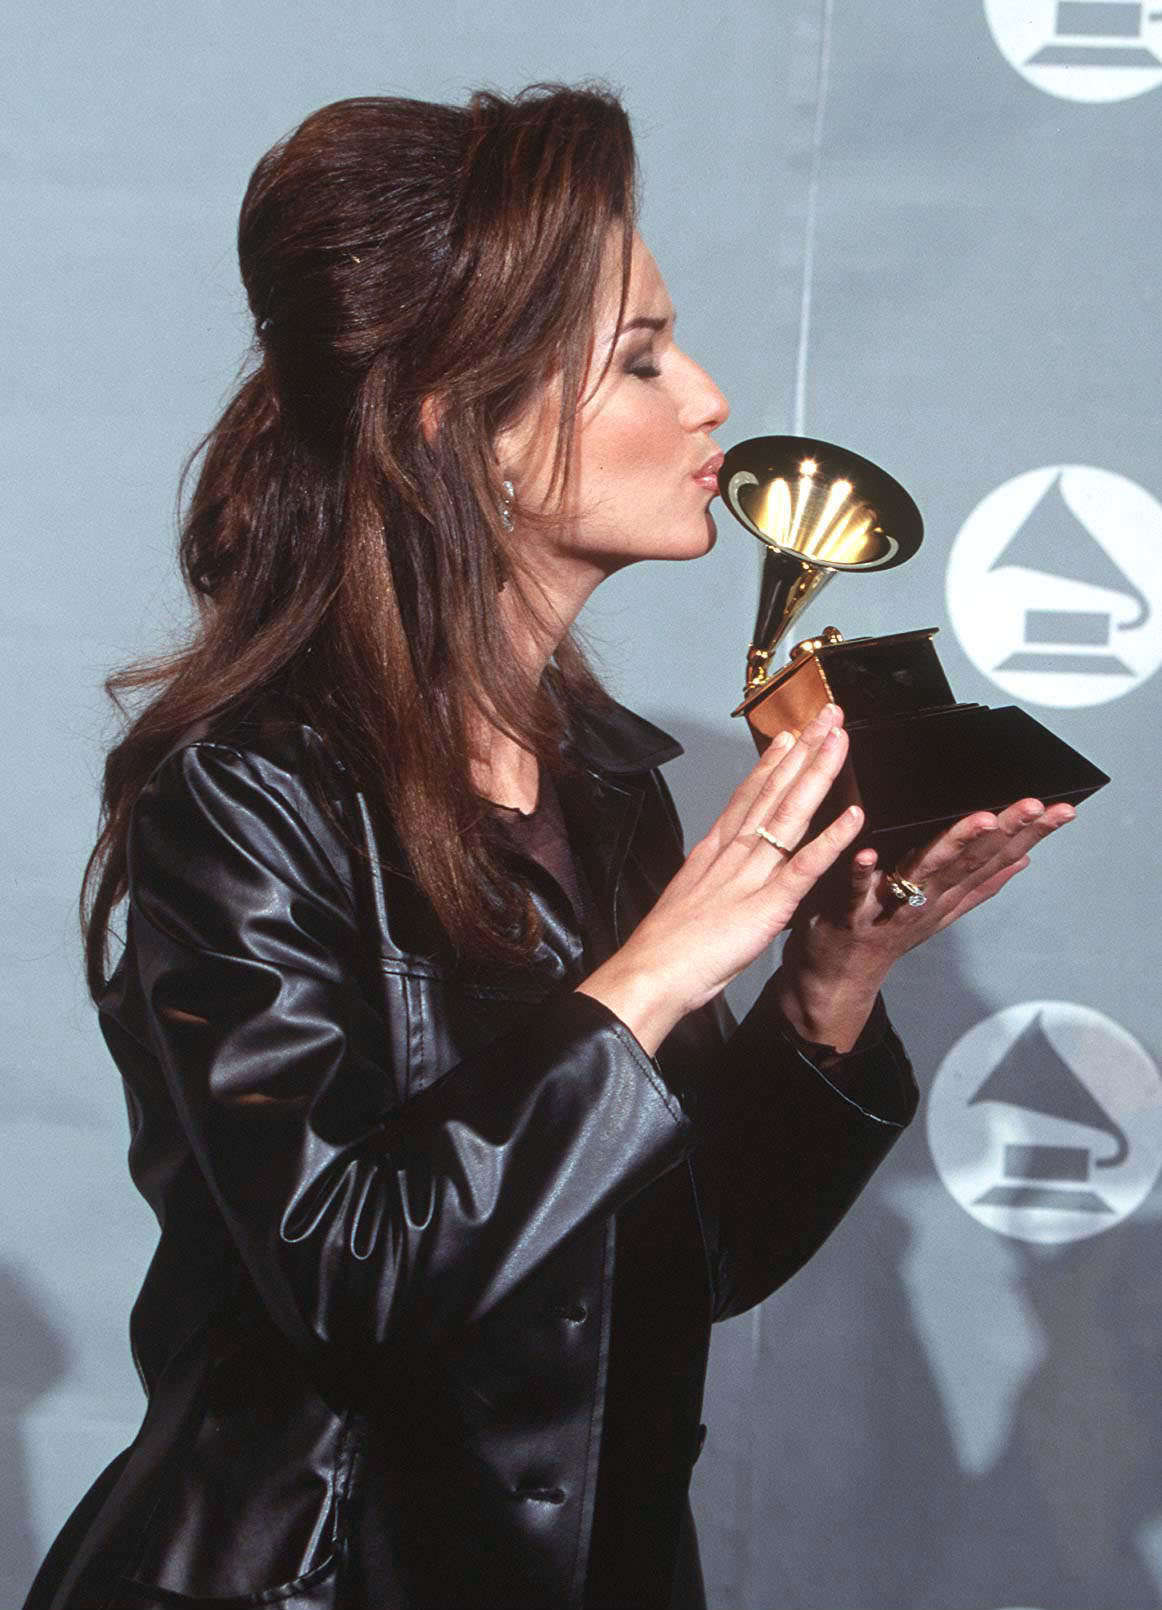 Grammy Awards 1996 Shania Twain Photo 22635138 Fanpop